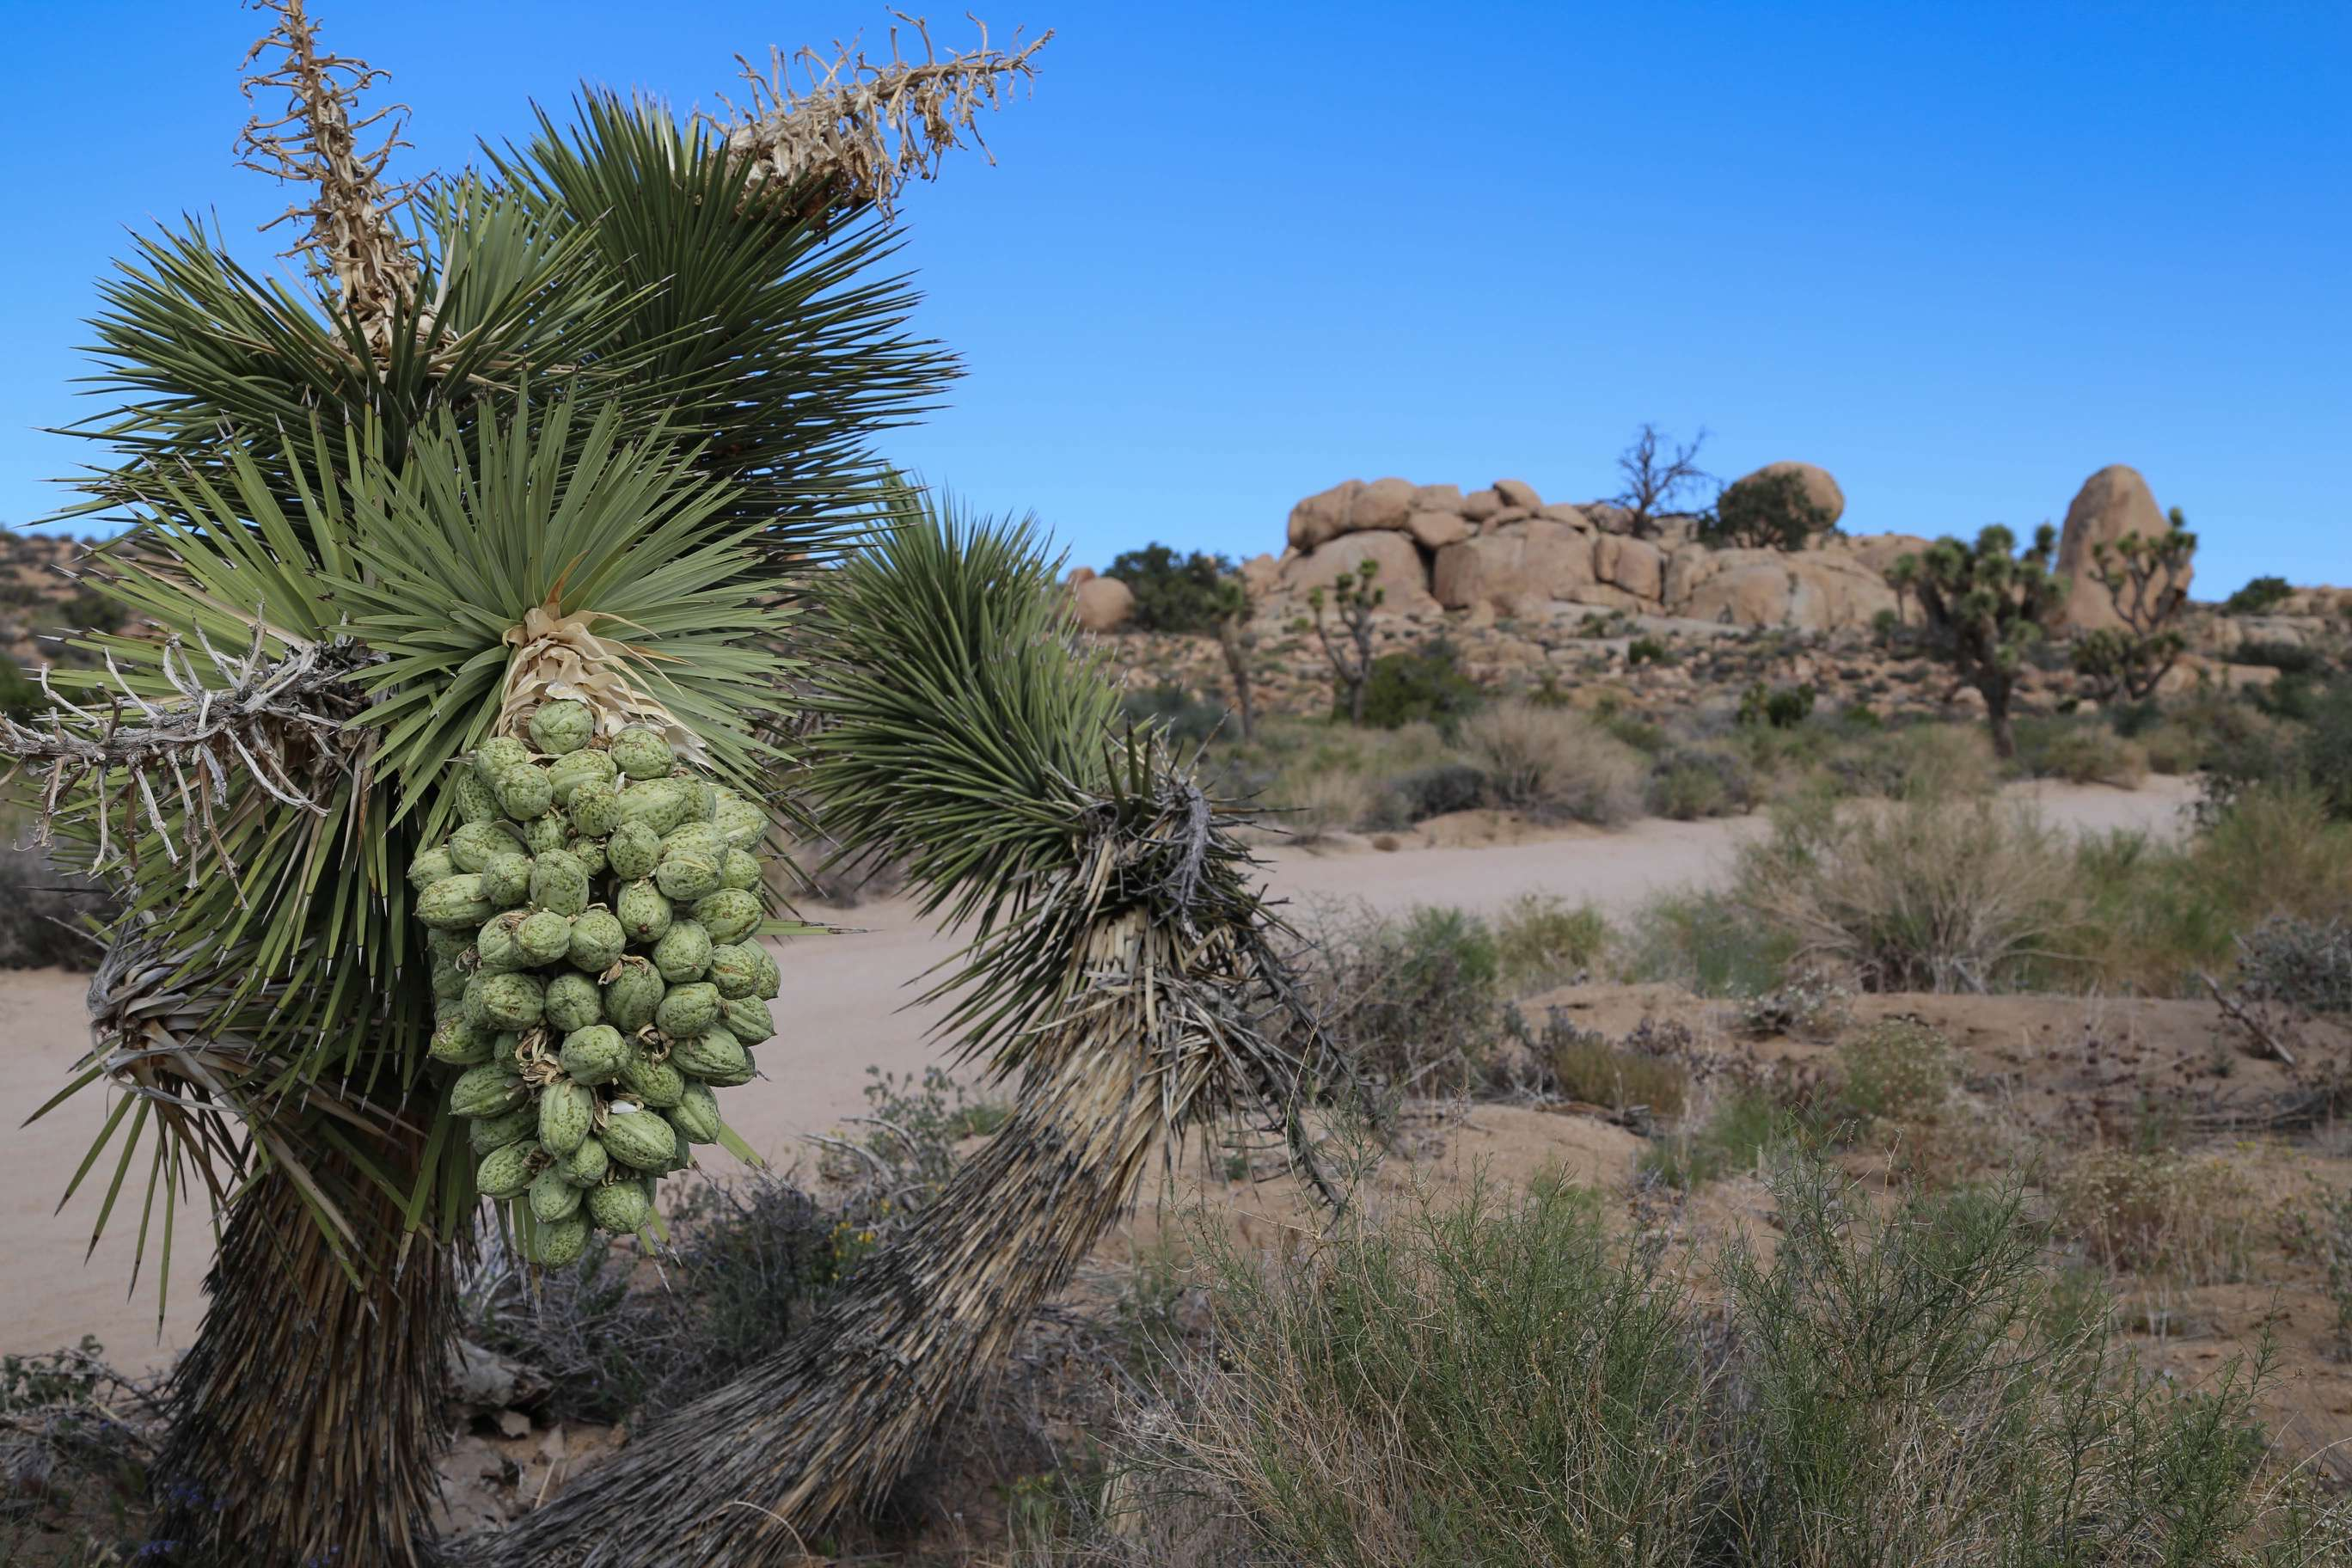 A Joshua tree, full of bloom basks in the warm sun.